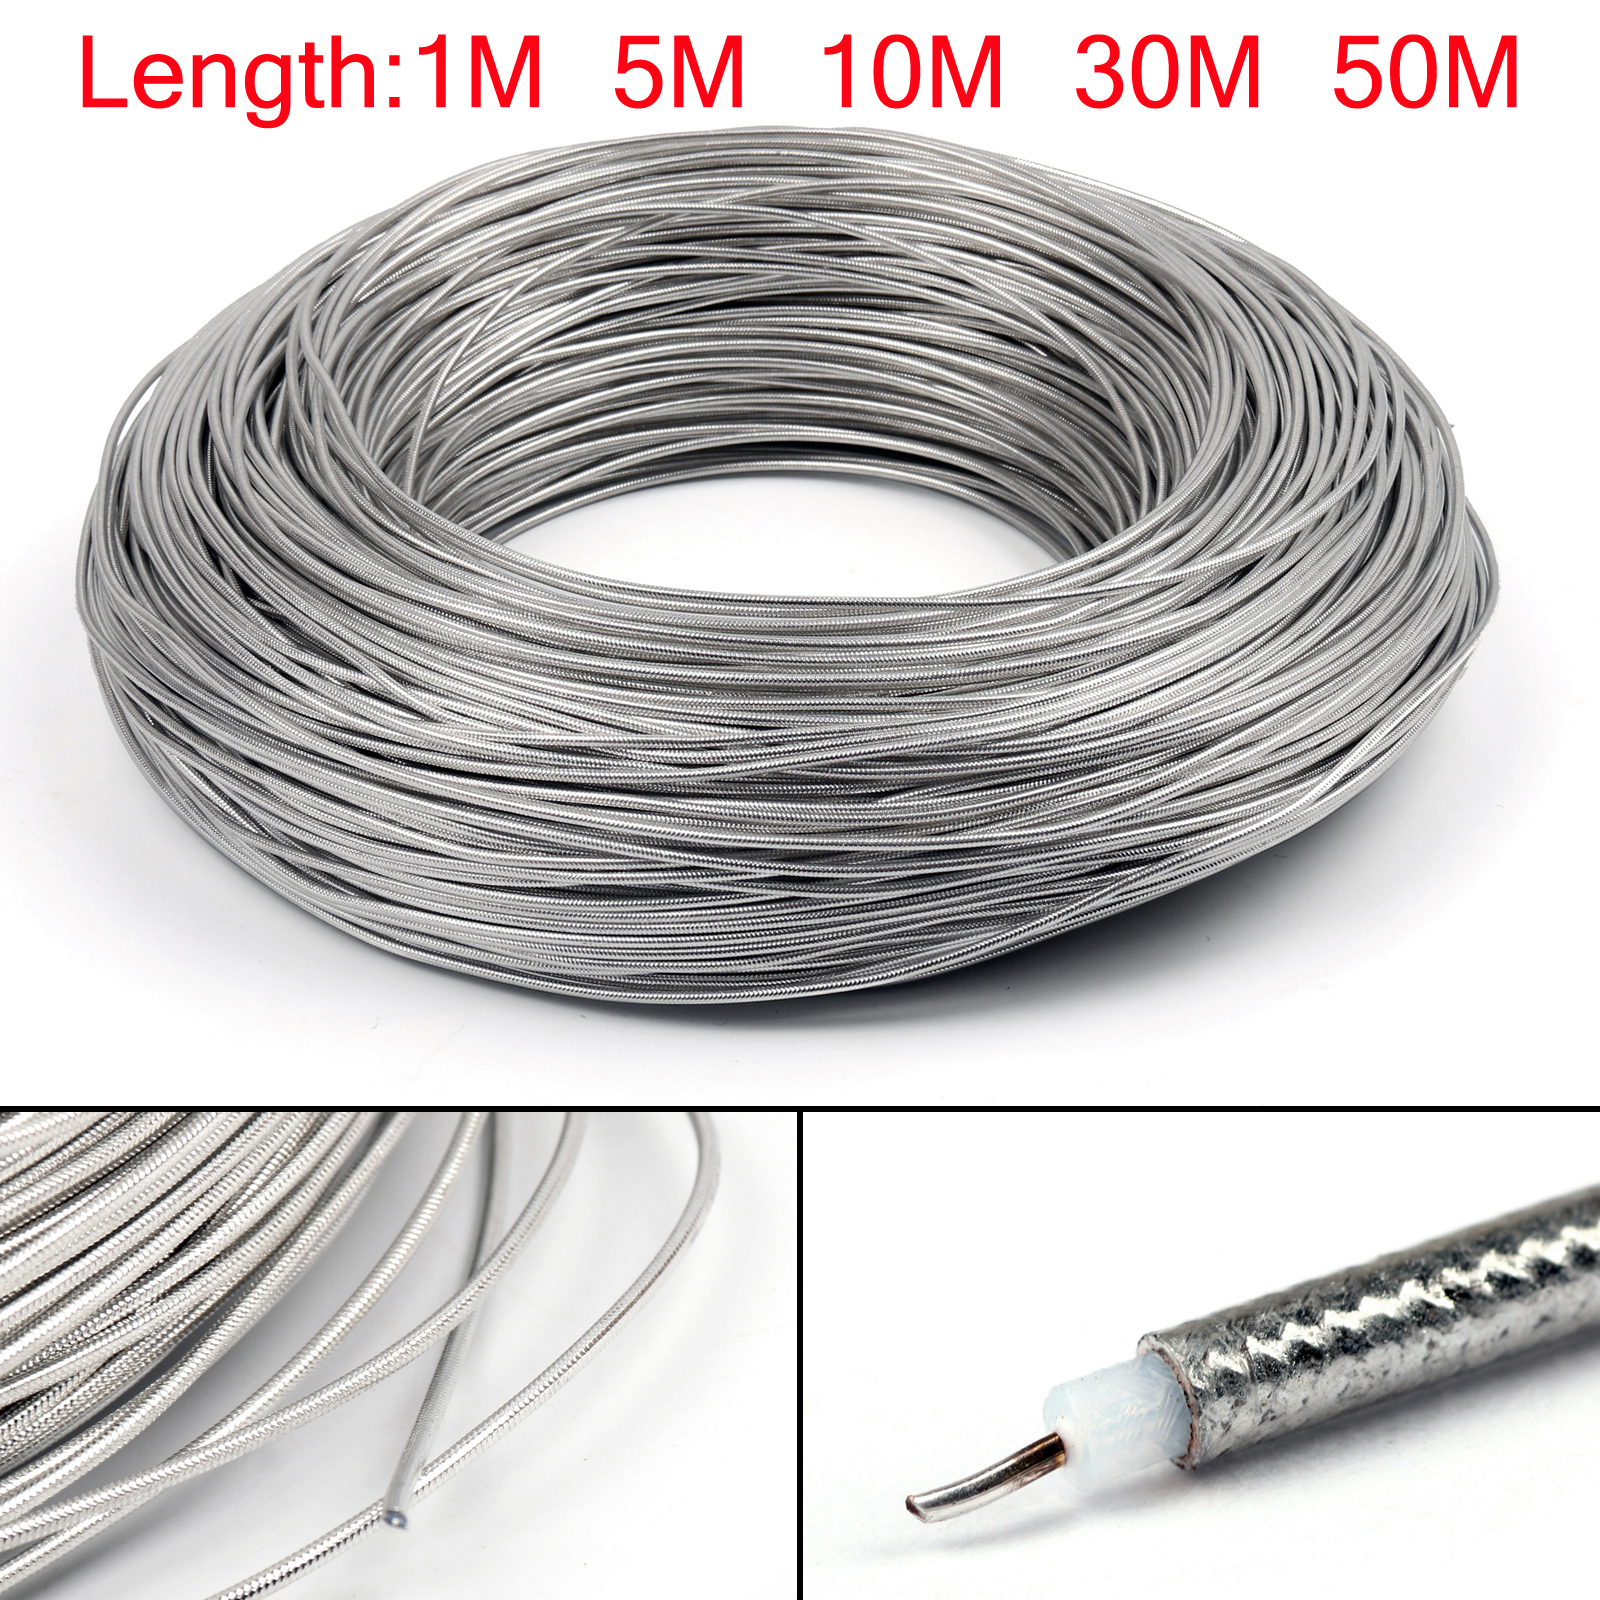 Areyourshop 1m / 5m / 10m / 30m / 50m RG405 RF Coaxial Cable Flexible RG-405 Coax Pigtail RG 405